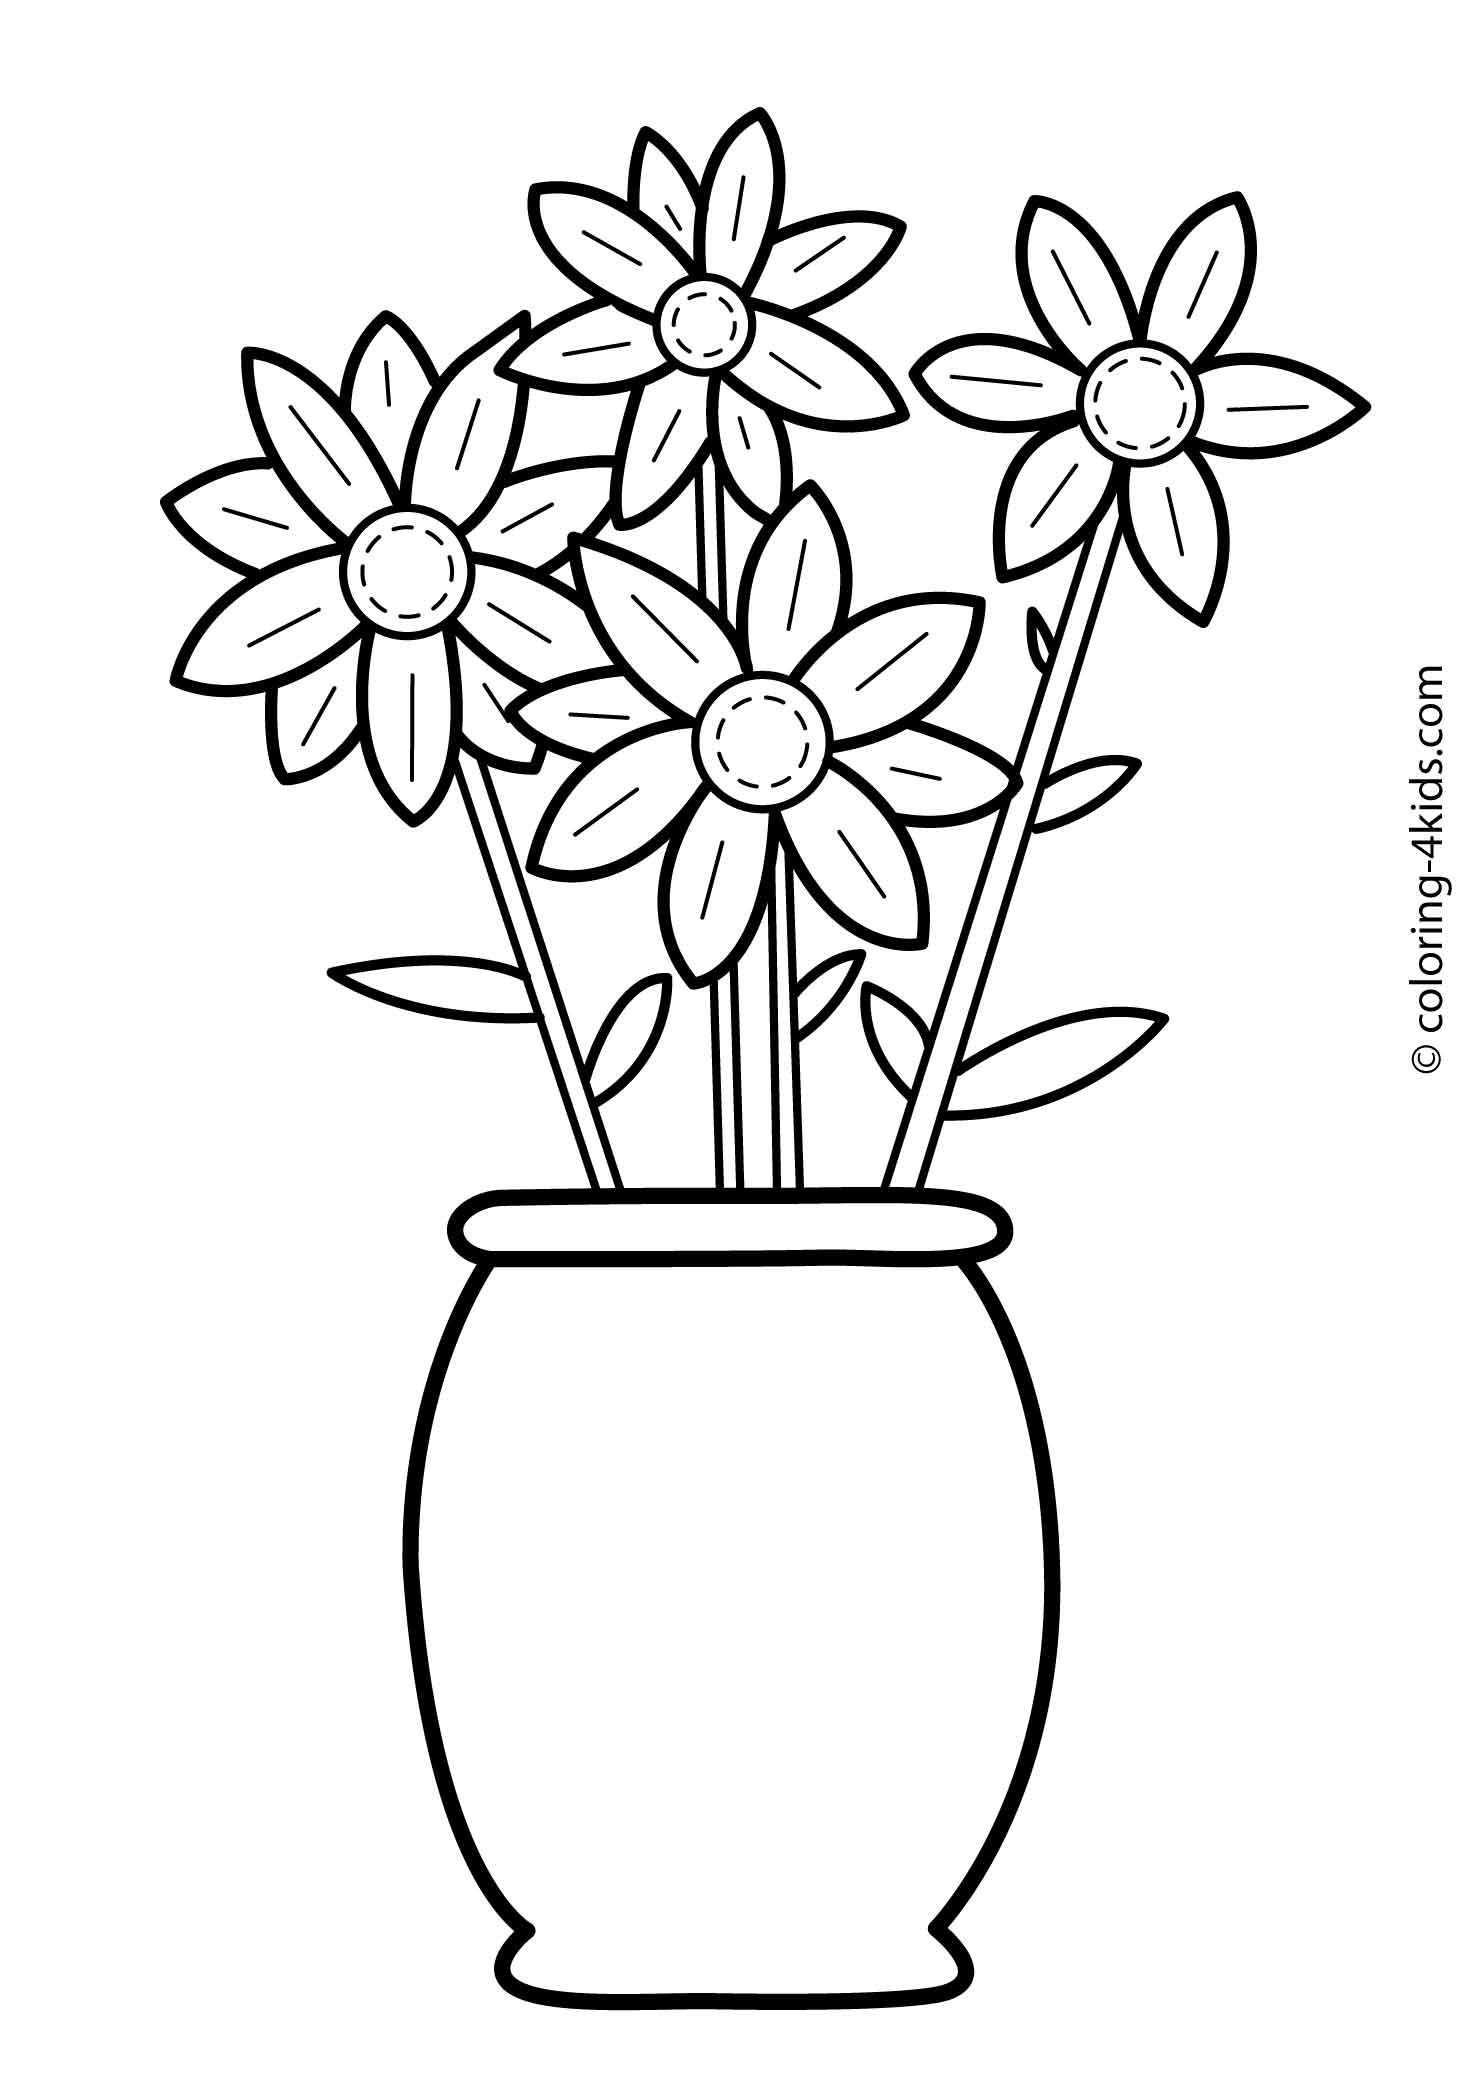 Flowers Coloring Pages For Kids Printable 6